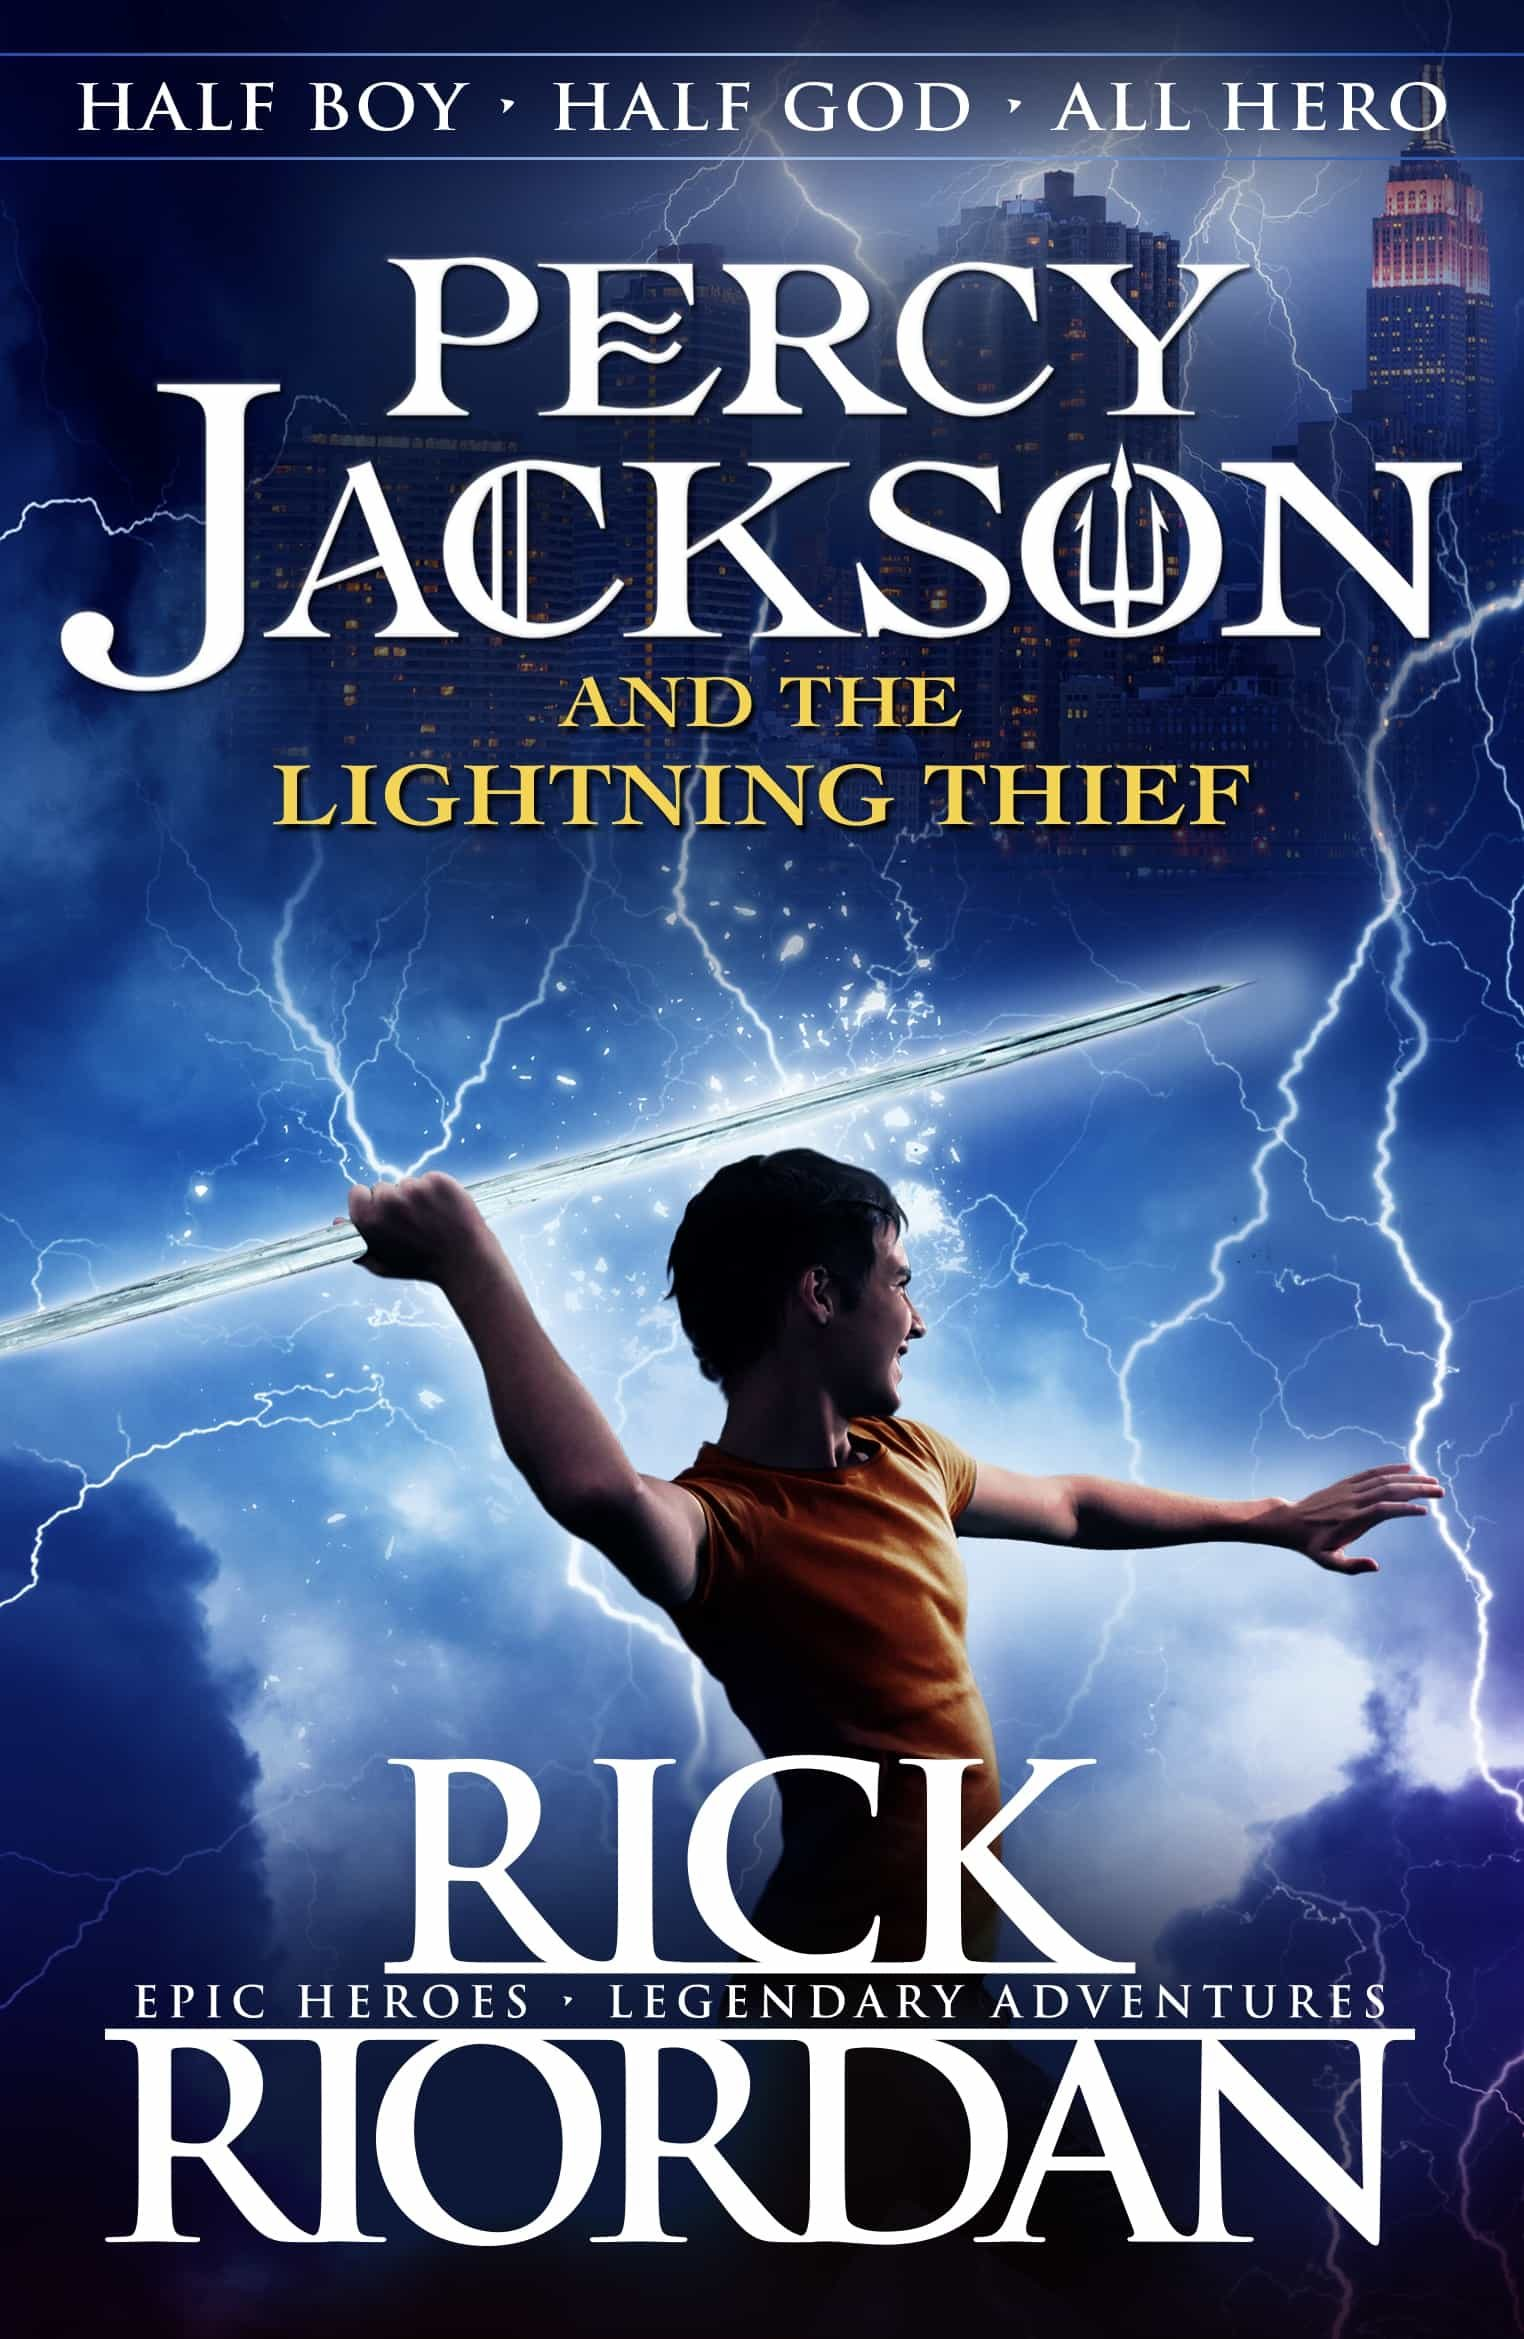 EBOOK PERCY JACKSON BOOK 1 PDF DOWNLOAD - (Pdf Plus.)